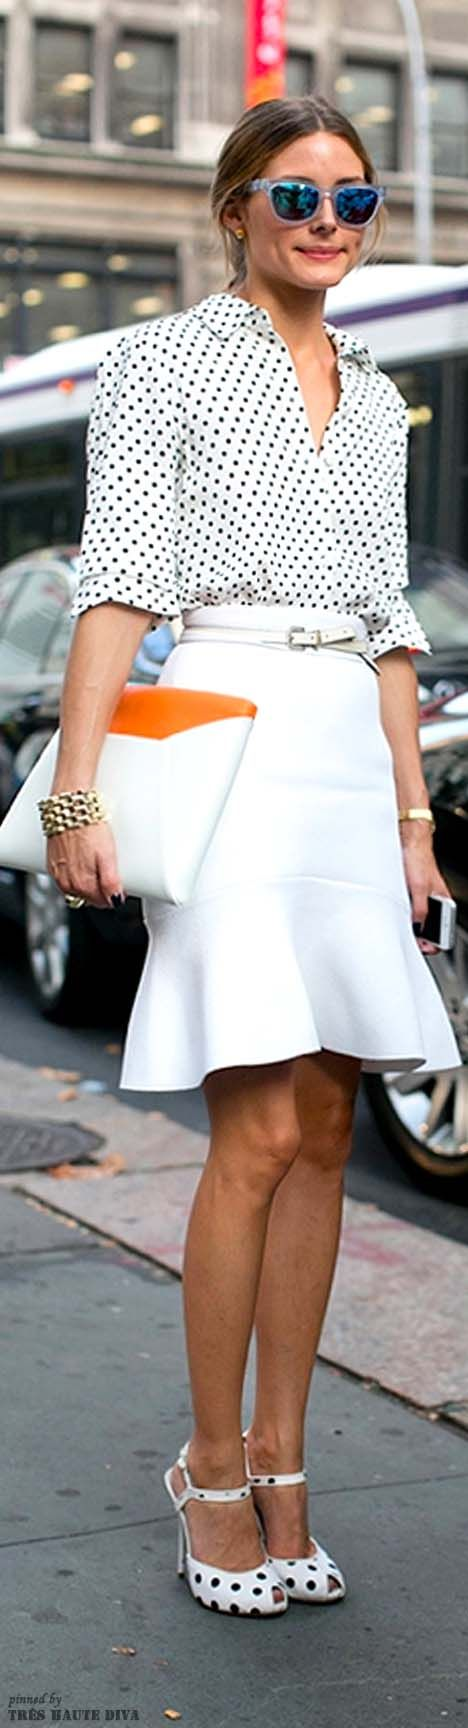 Street Style Nyfw 39 14 Nyfw Fashion S T Y L E Pinterest Olivia D 39 Abo Skirts And Style